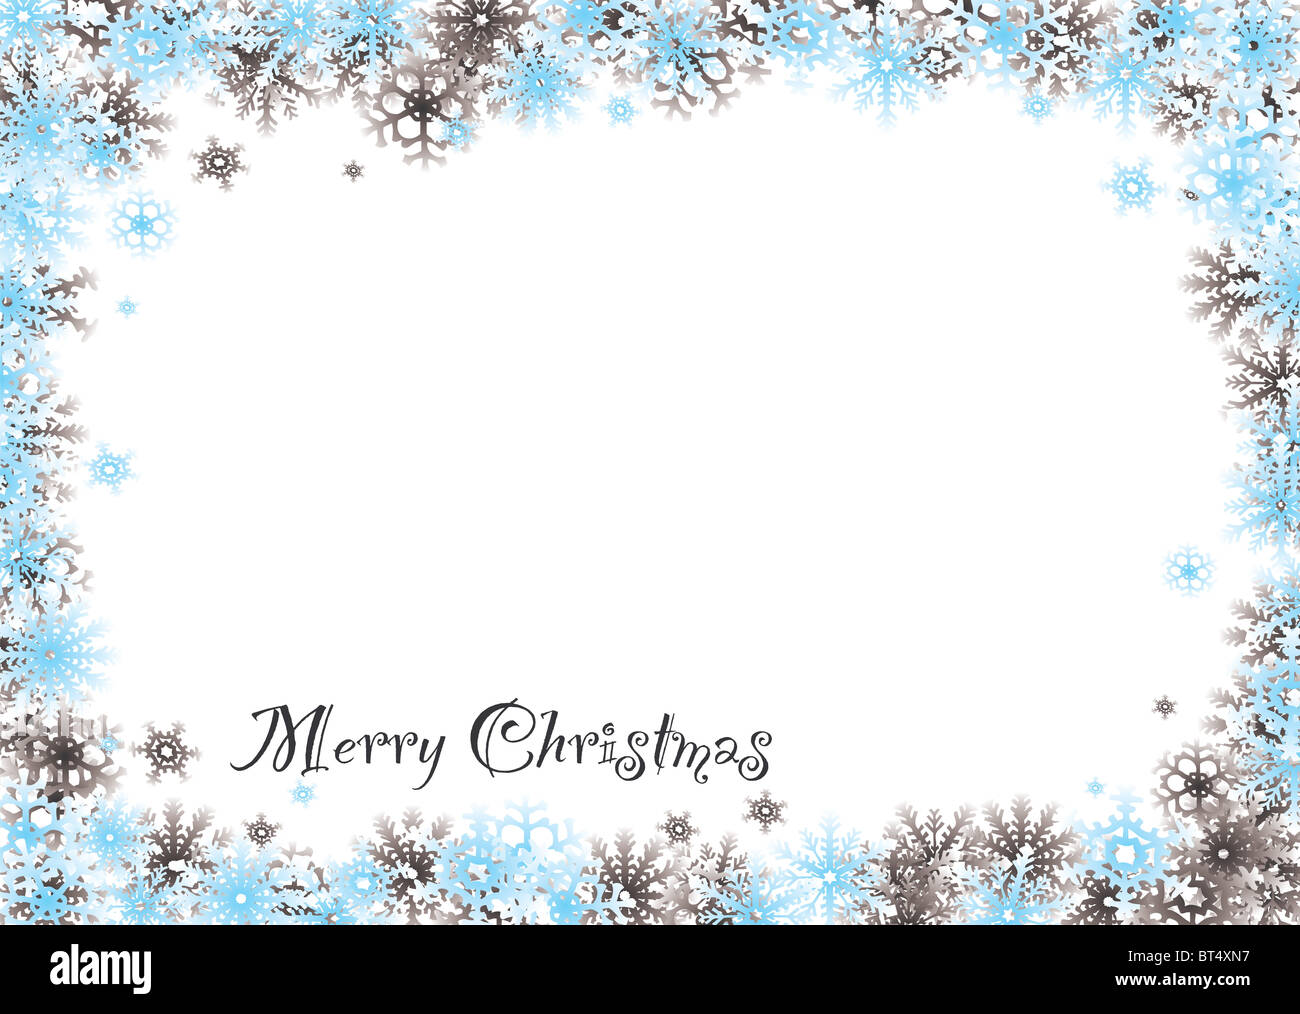 White Christmas Snow Background.Modern Snow White Christmas Background With Flakes Border